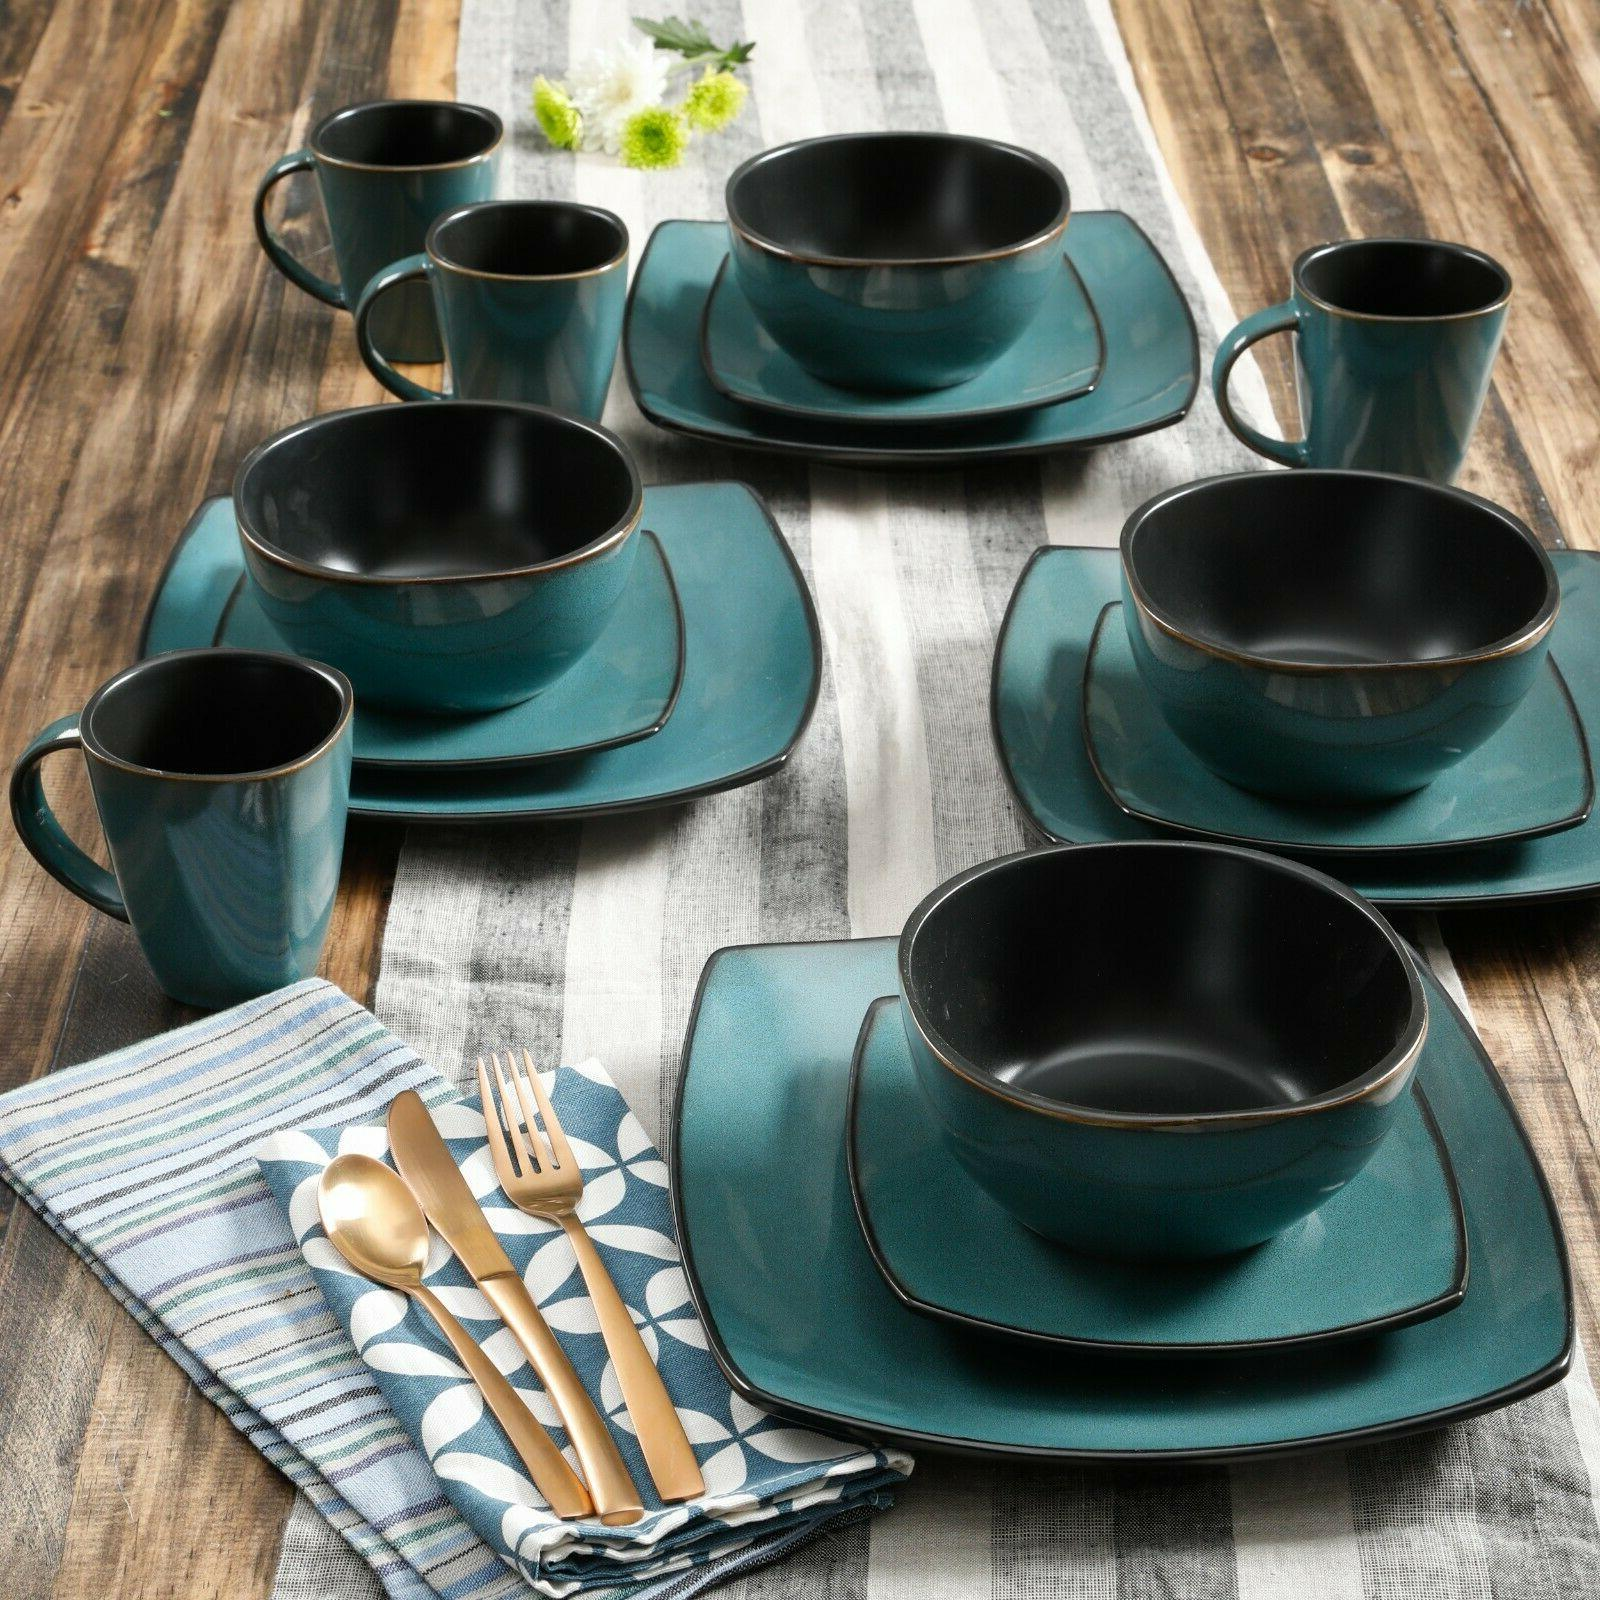 Beautiful 16-Piece Teal and Black Dinnerware Set Round Squar